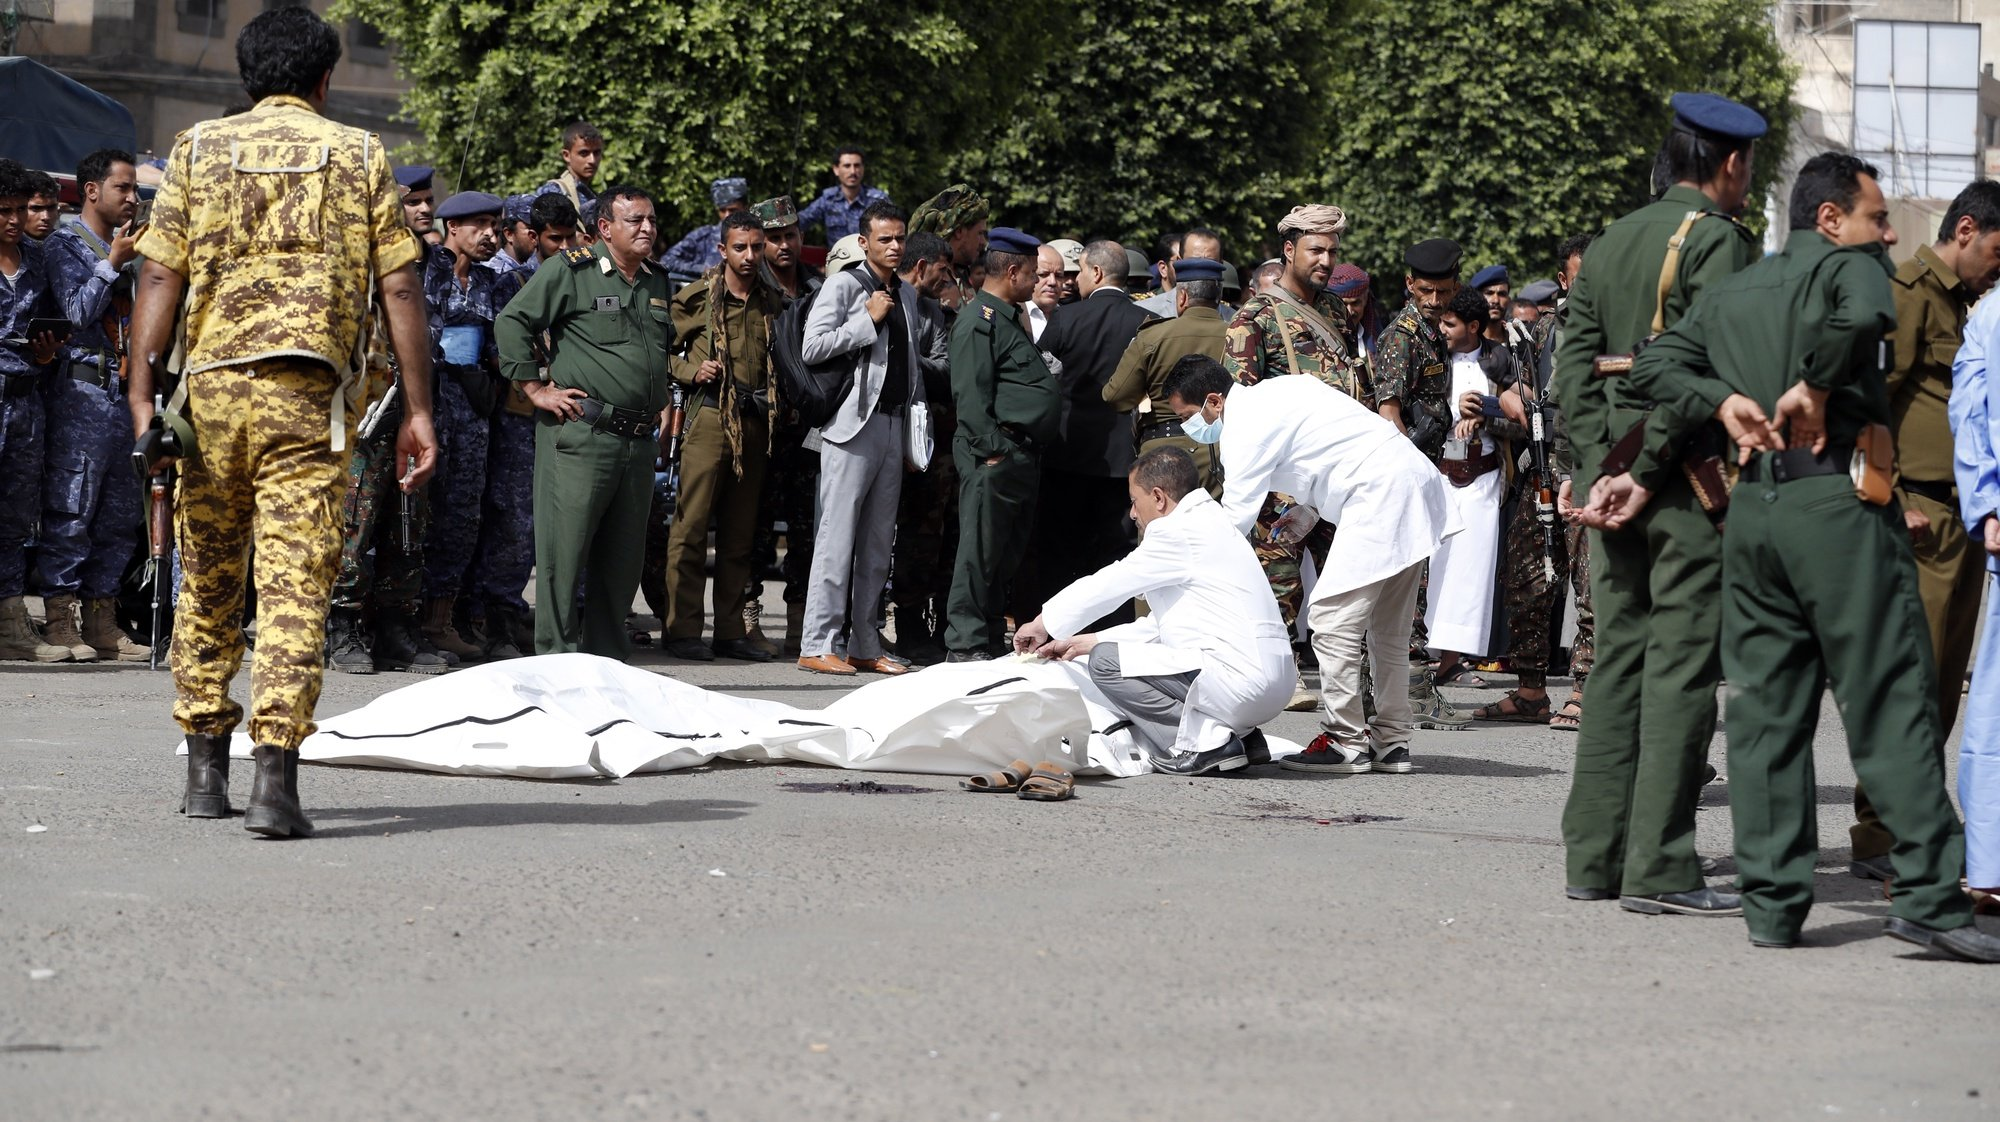 epa09275416 Soldiers wrap the bodies of Abdullah Al-Makhali and Mohammed Arman, convicted of raping and murdering a boy, after they were shot dead at a public square in Sana'a, Yemen, 16 June 2021. Defendants Abdullah Al-Makhali, 38, and Mohammed Arman, 33, convicted of raping and killing boy Mohammed al-Haddad, were executed at a public square in the Yemeni capital Sana'a.  EPA/YAHYA ARHAB